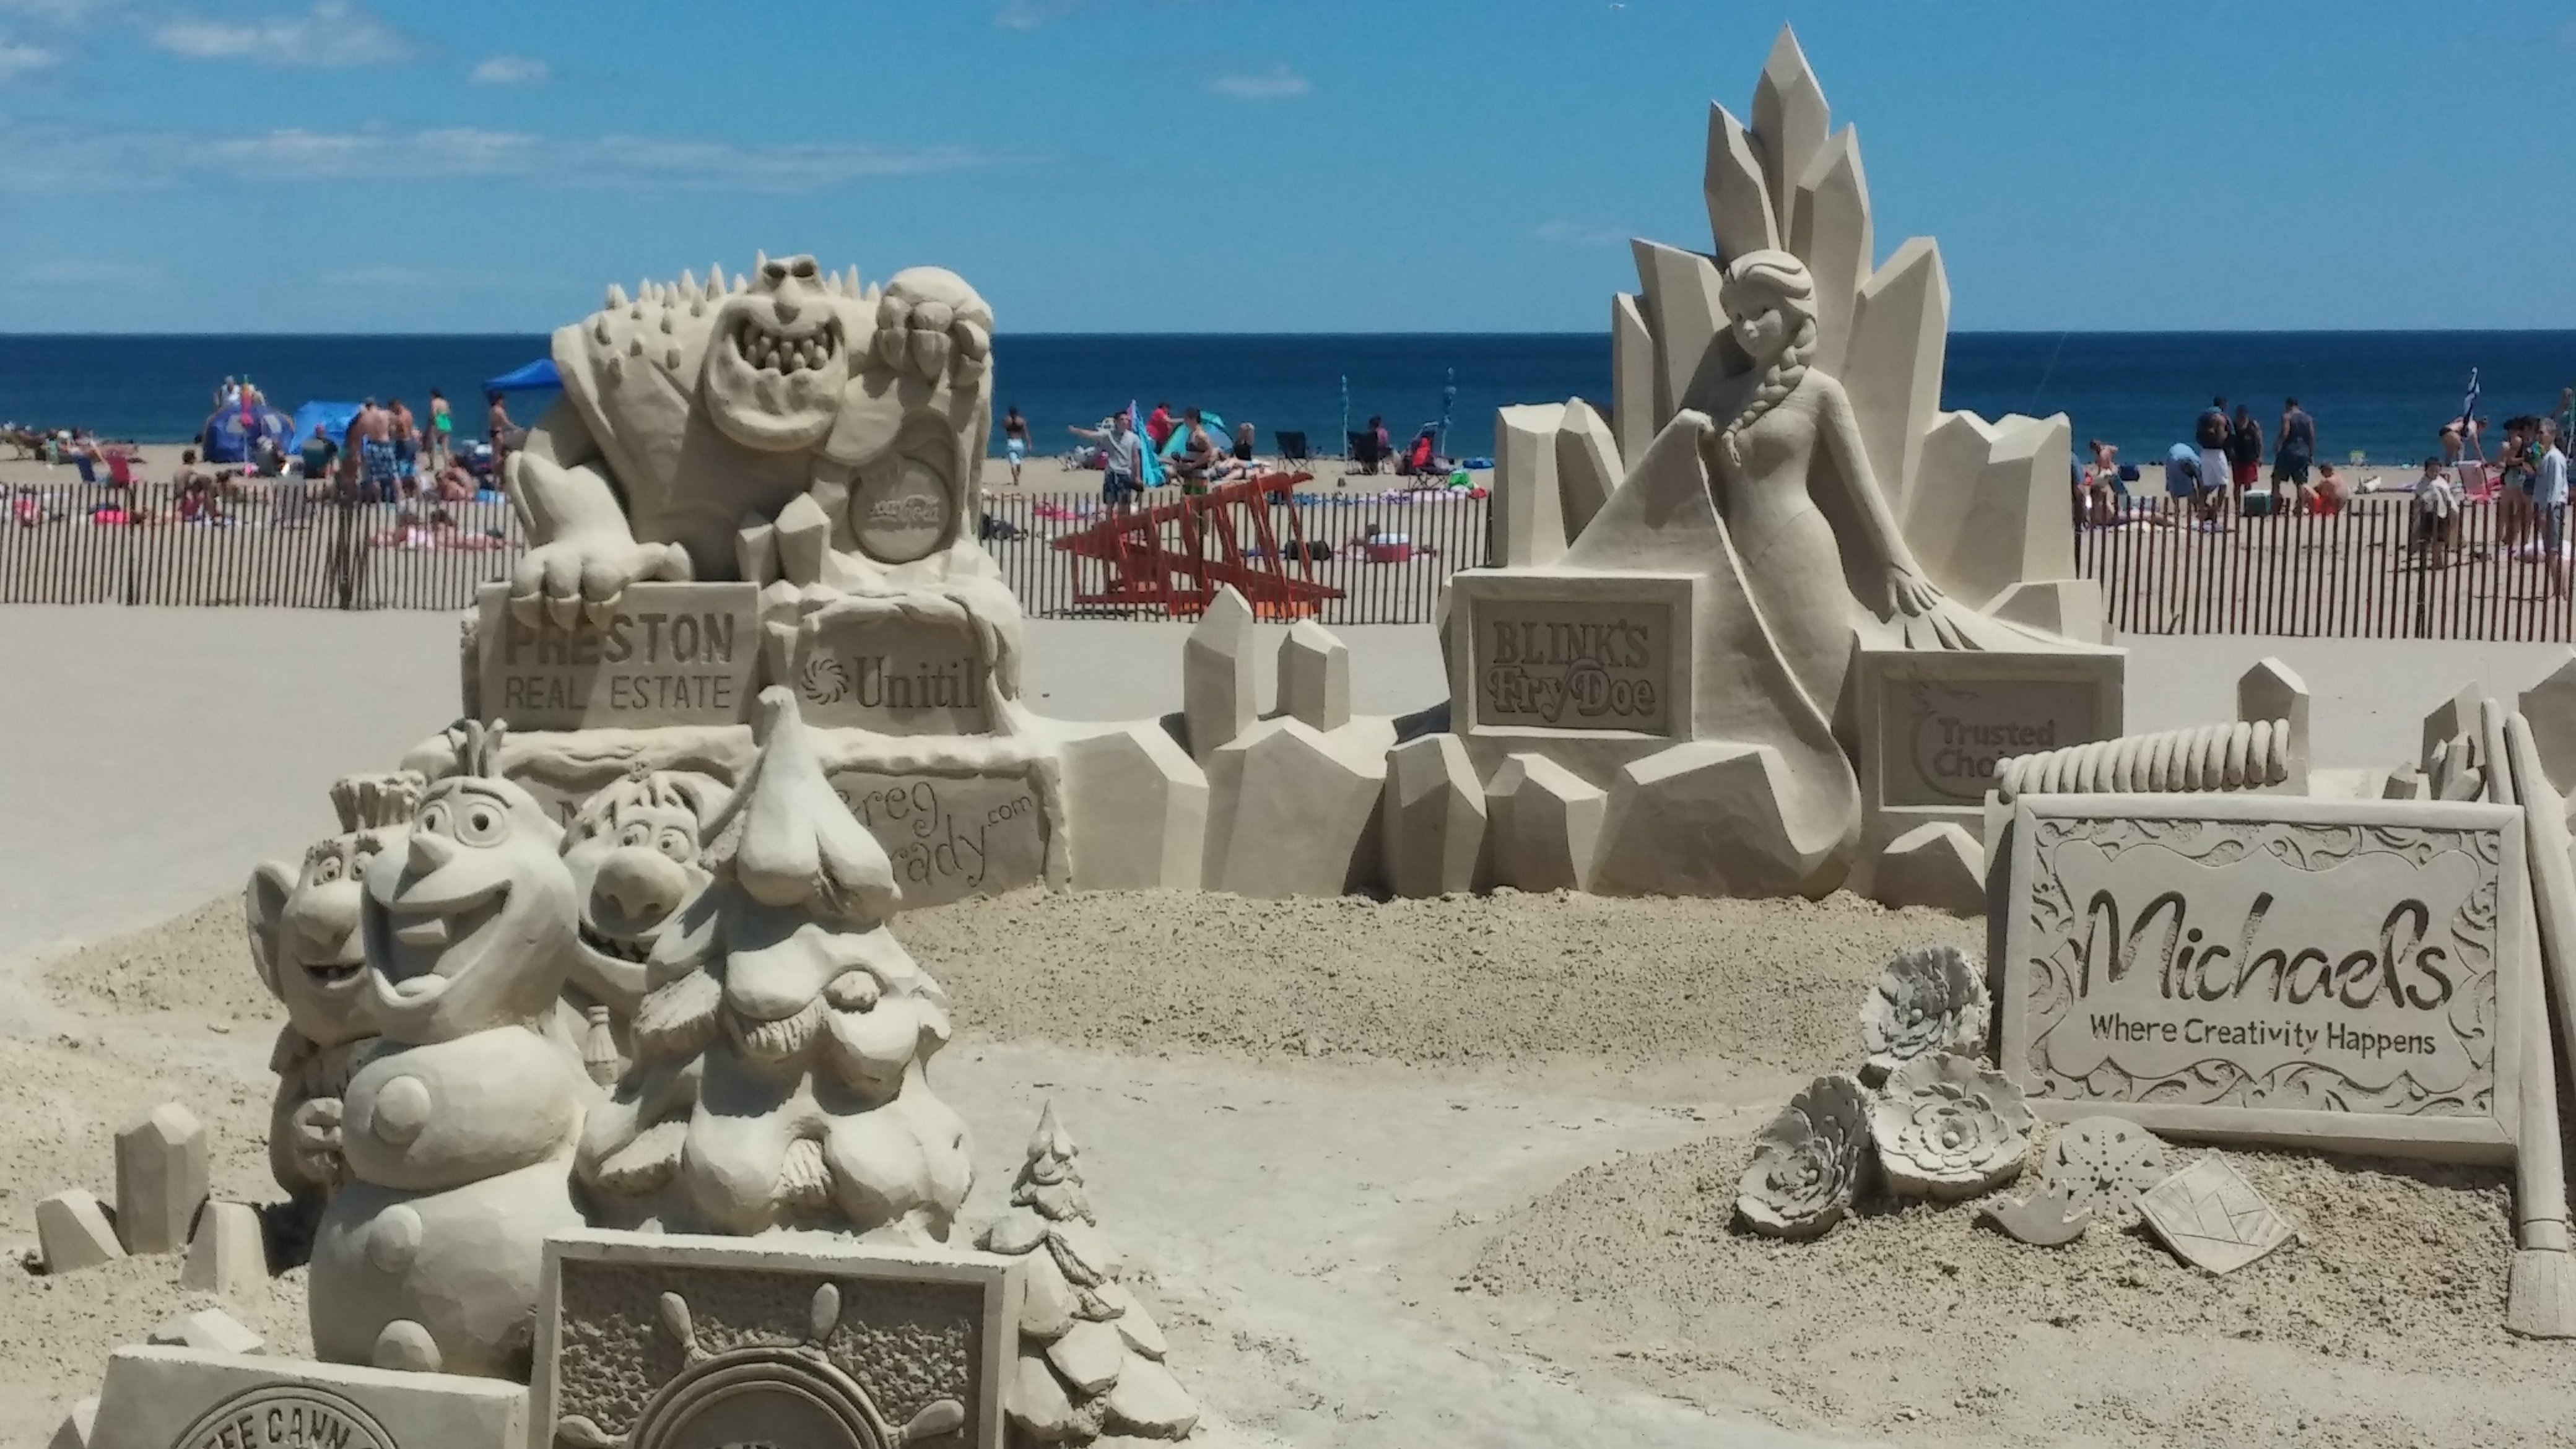 Tomorrow There Will Be A Voting For People S Choice Award From 1 00pm 4 Where You Can Vote Your Favorite Sand Sculpture The Awards Ceremony